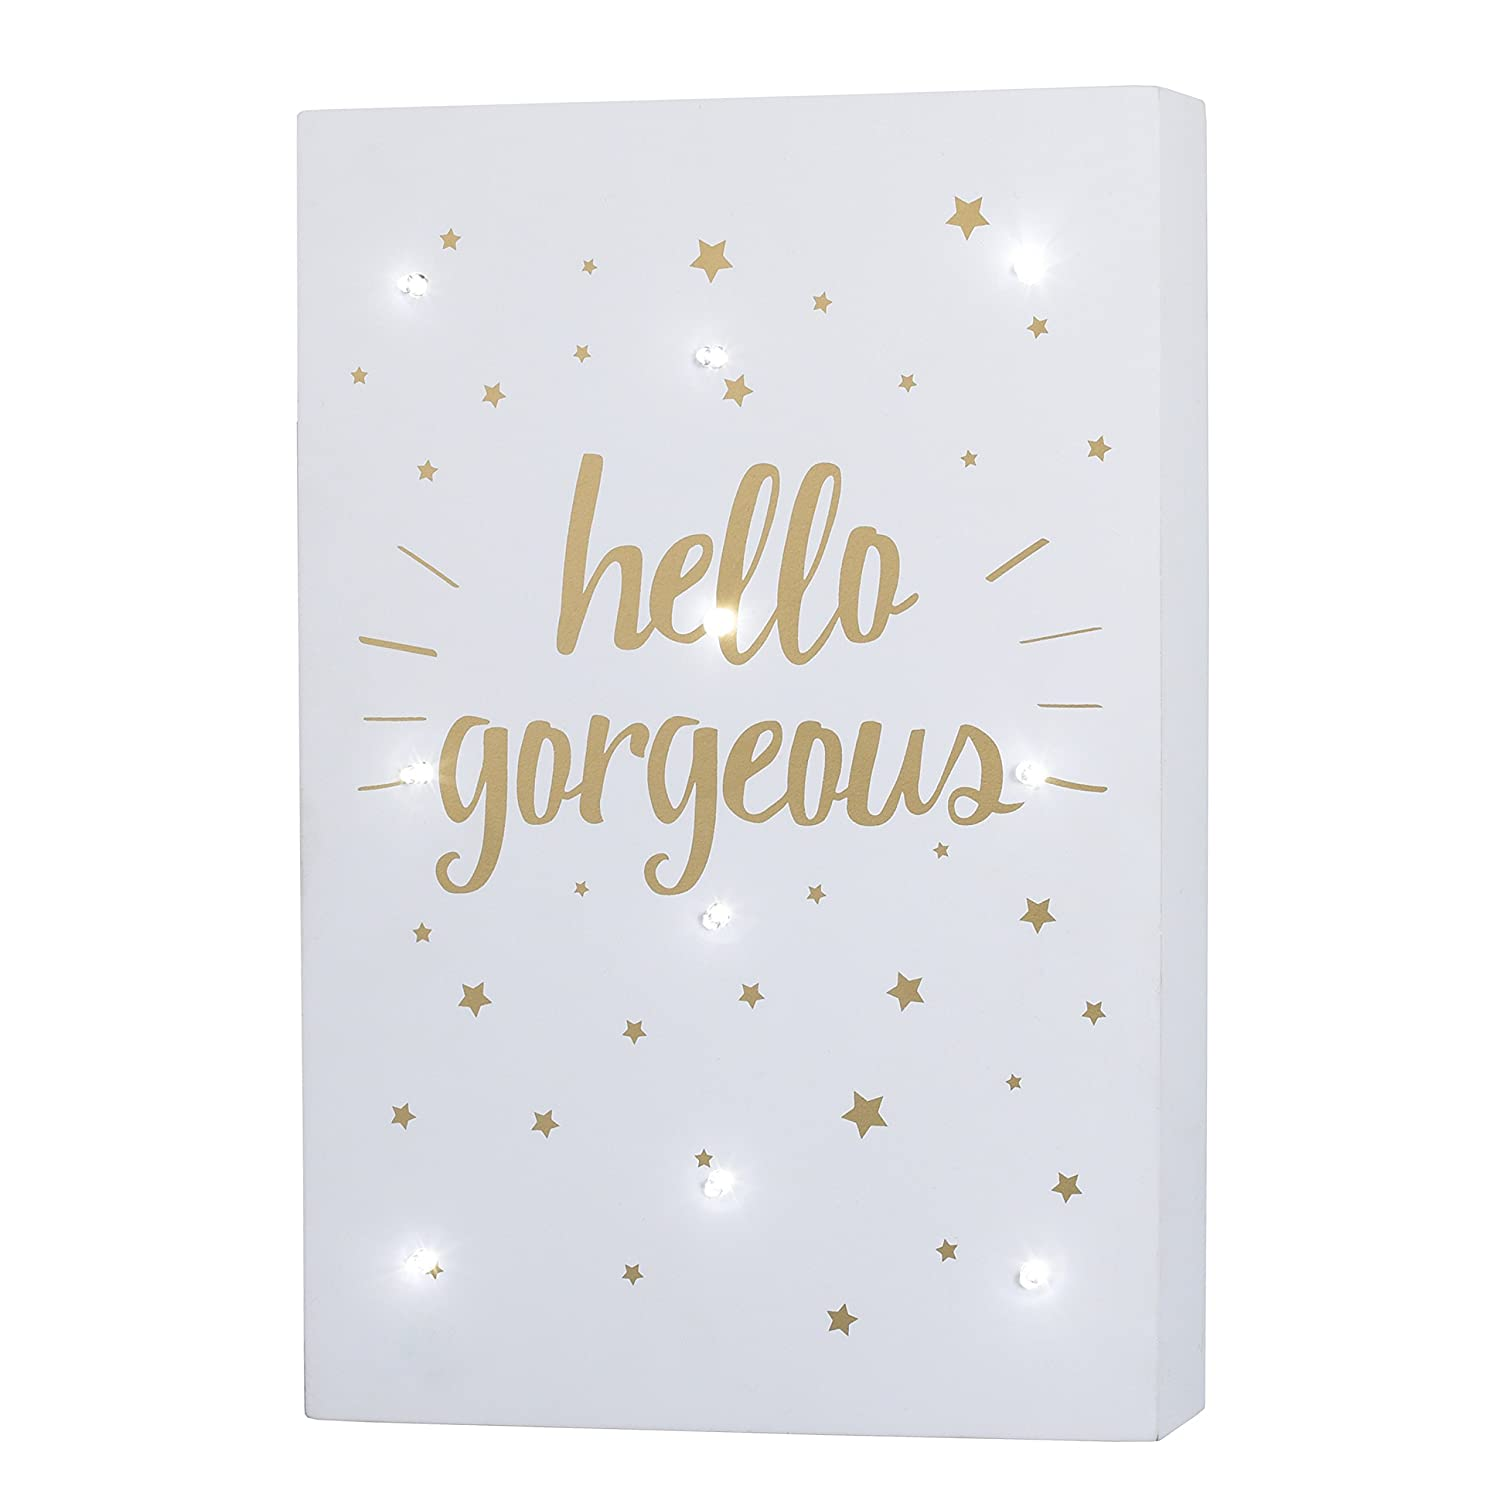 Little Love by NoJo Celestial Lighted Wall Decor, Hello Gorgeous, Gold/White